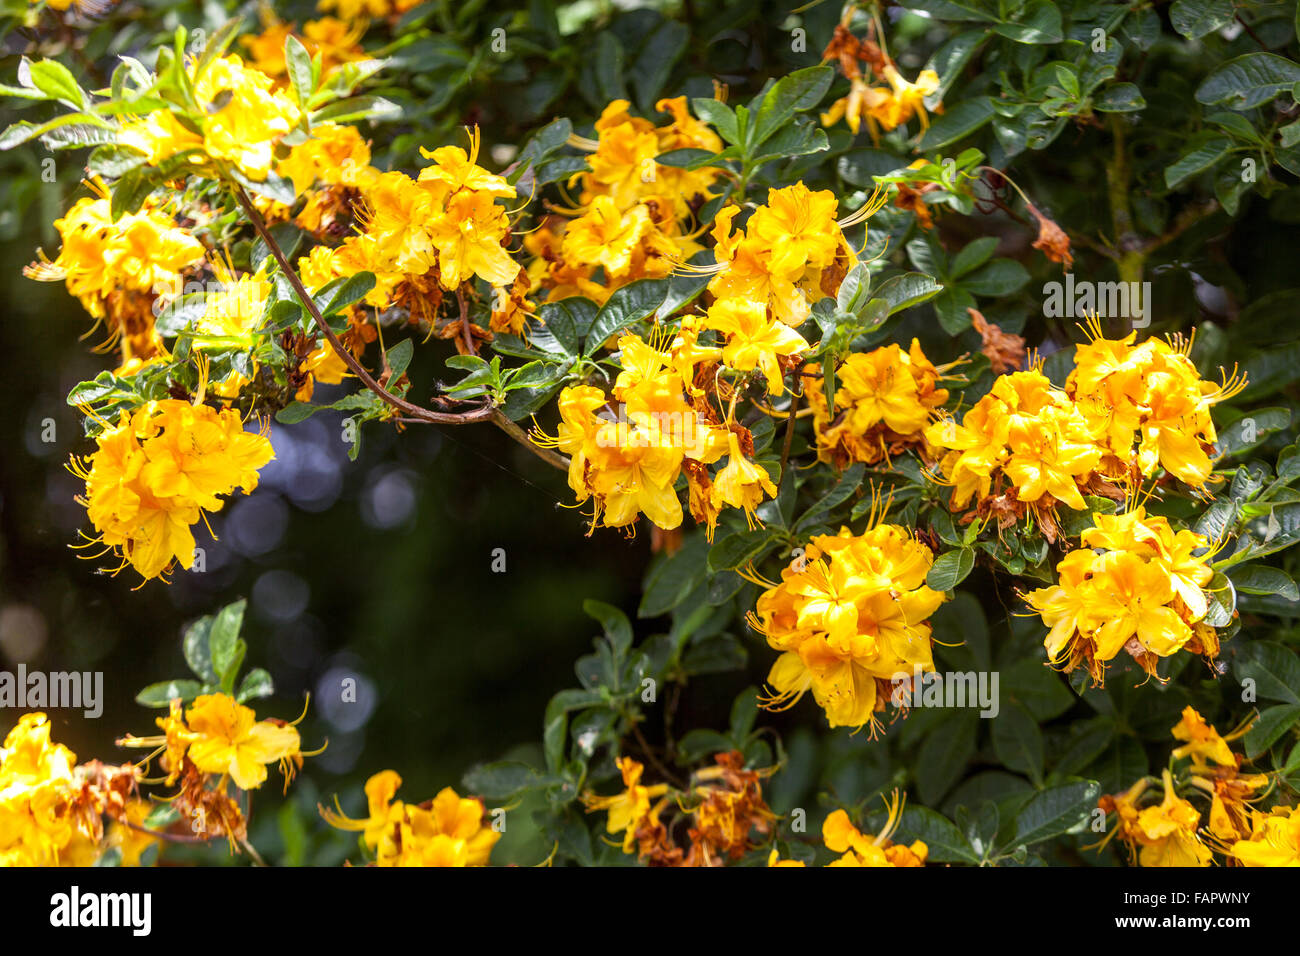 Rhododendron luteum blooming - Stock Image